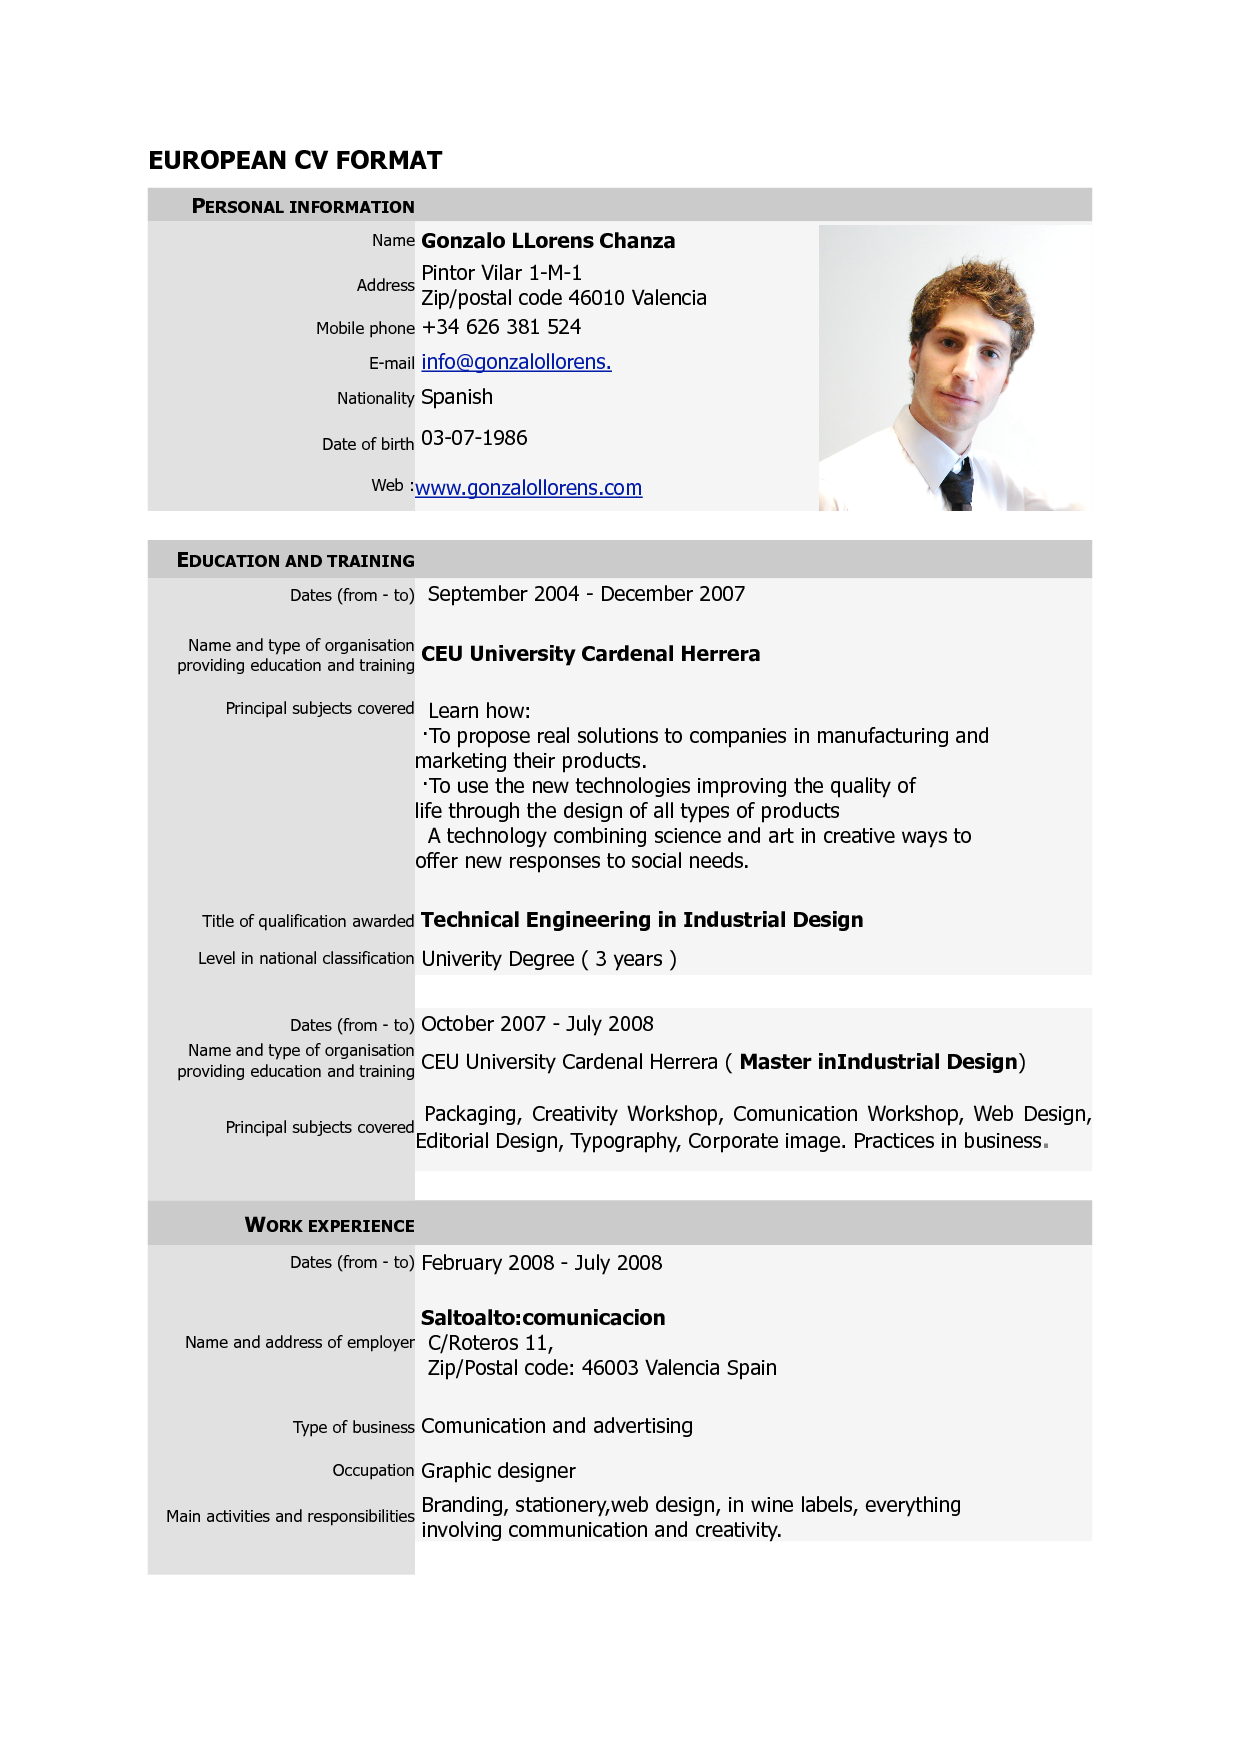 free download cv europass pdf europass home european cv format pdf - Standard Resume Sample Pdf